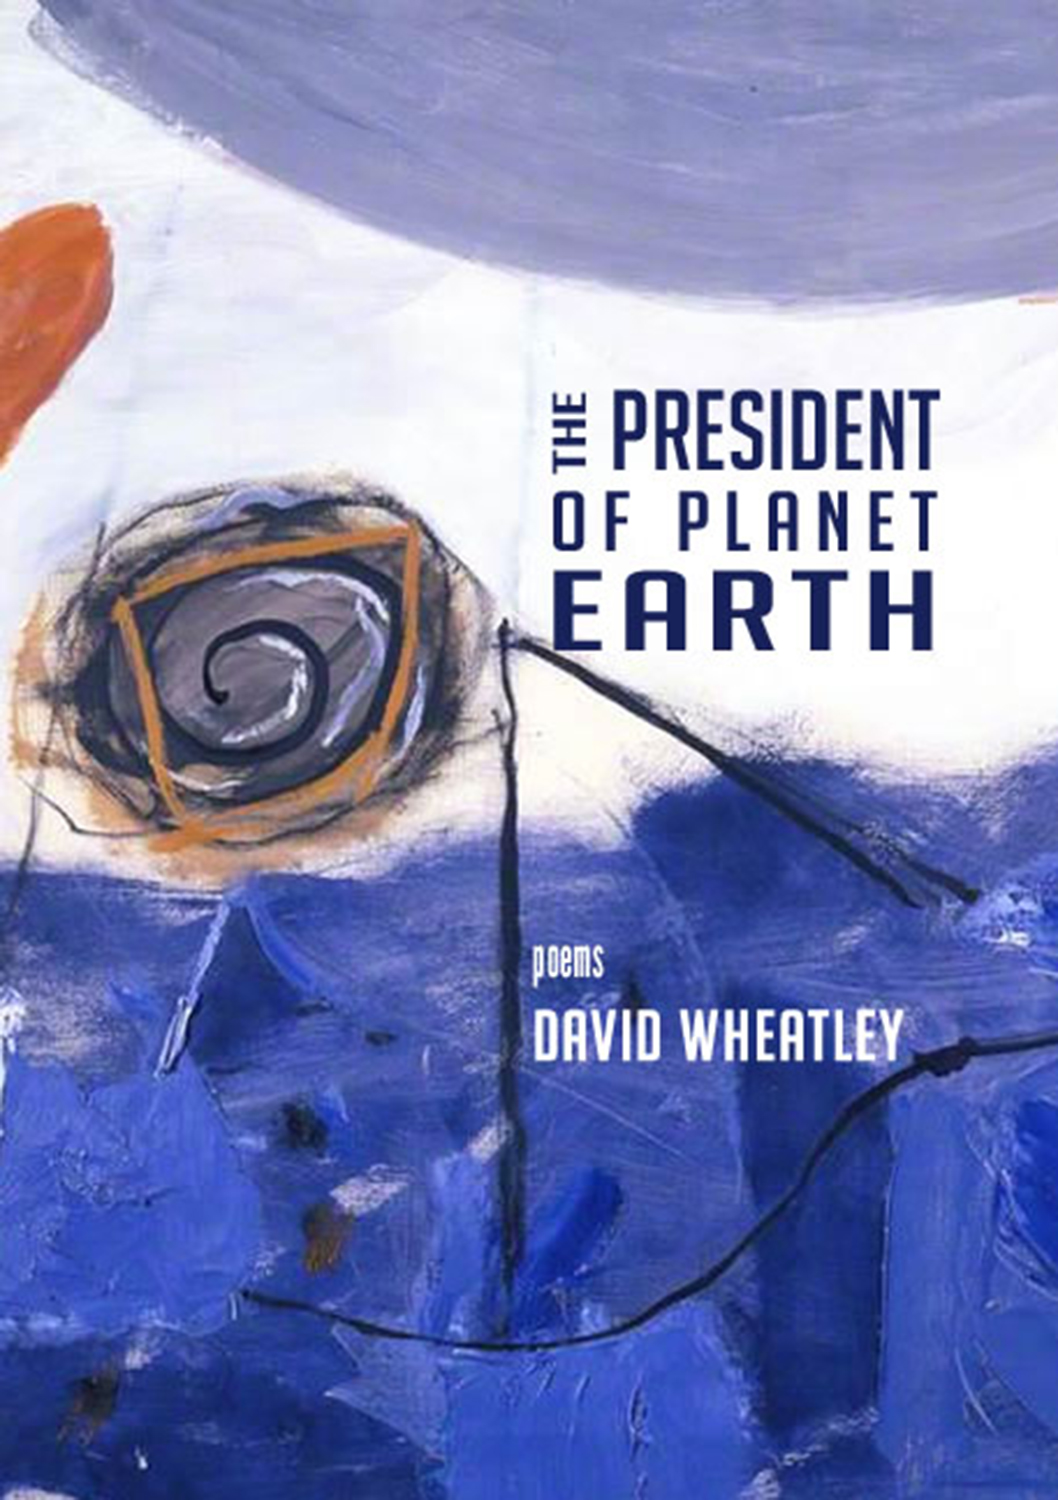 The President of Planet Earth by David Wheatley